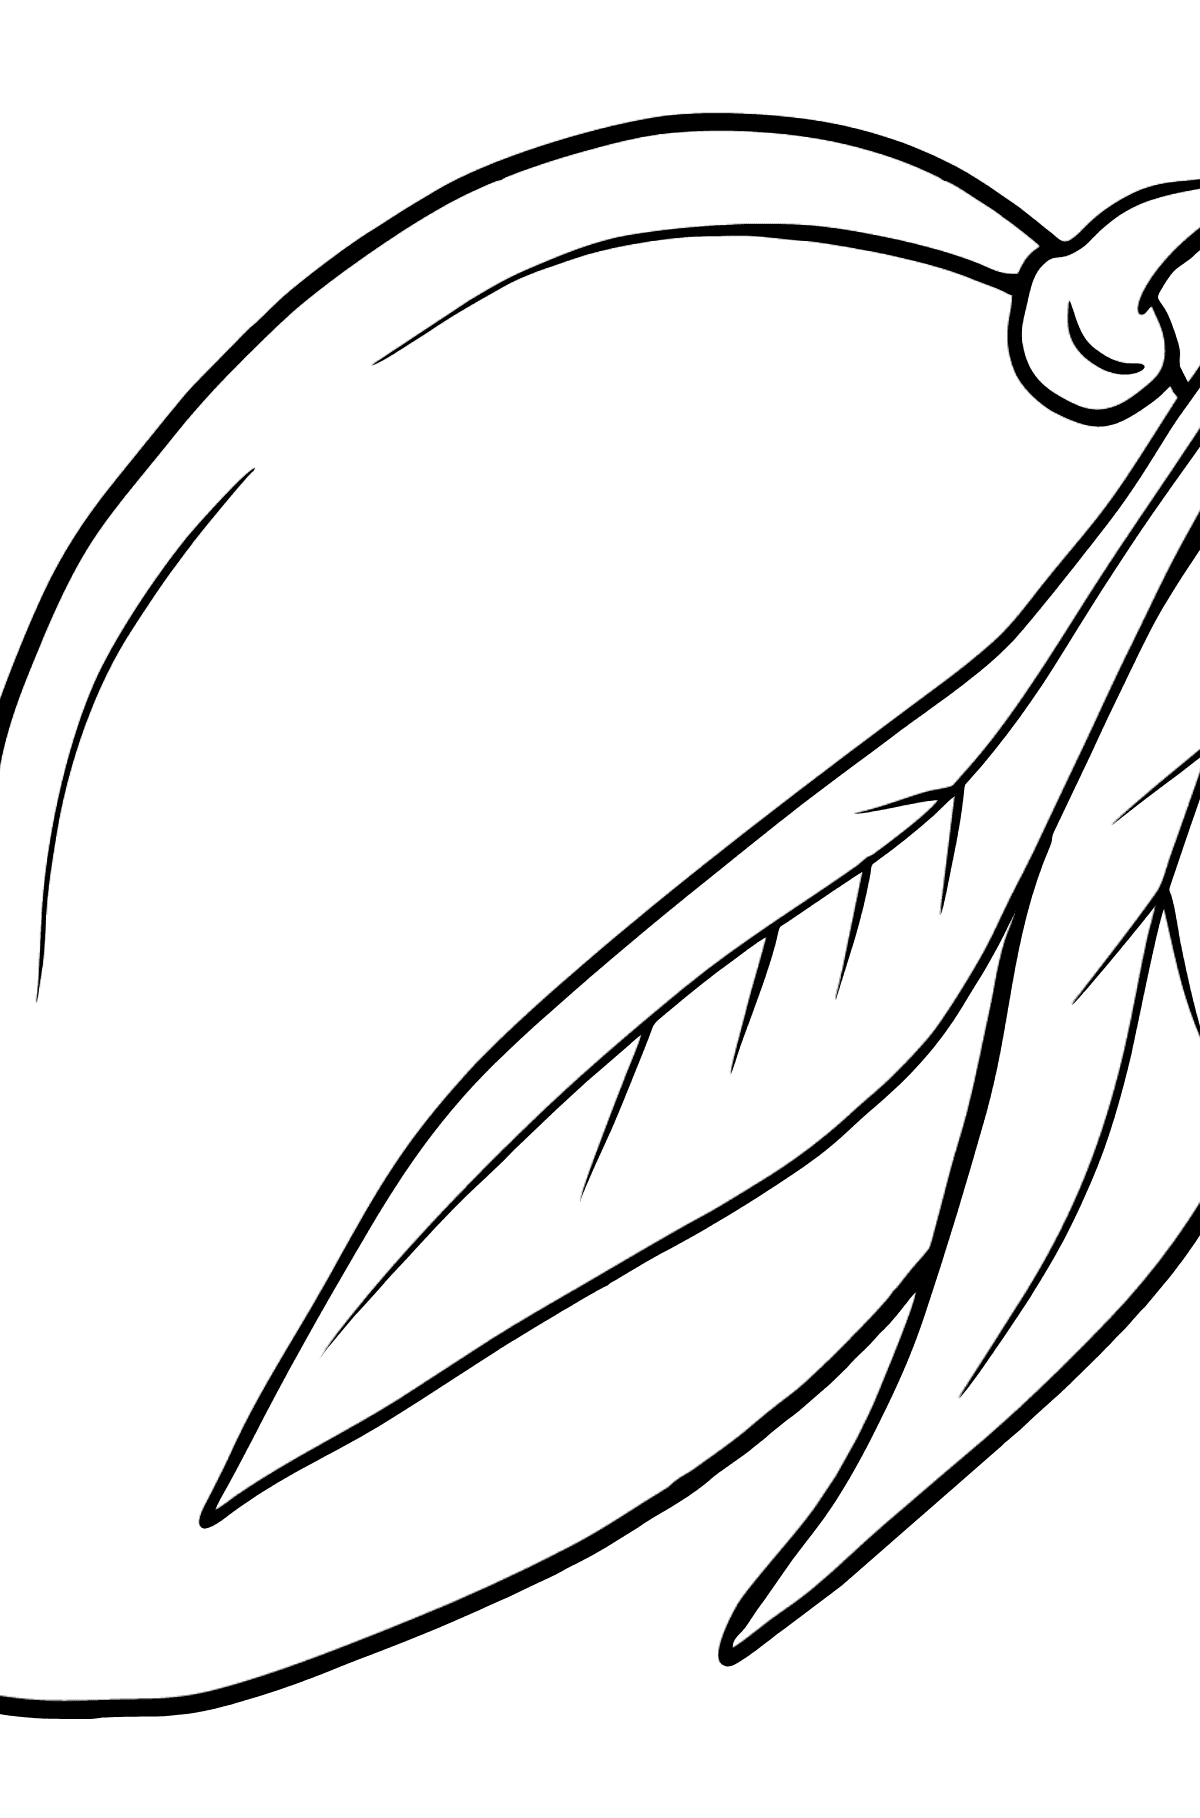 Mango coloring page - Coloring Pages for Kids